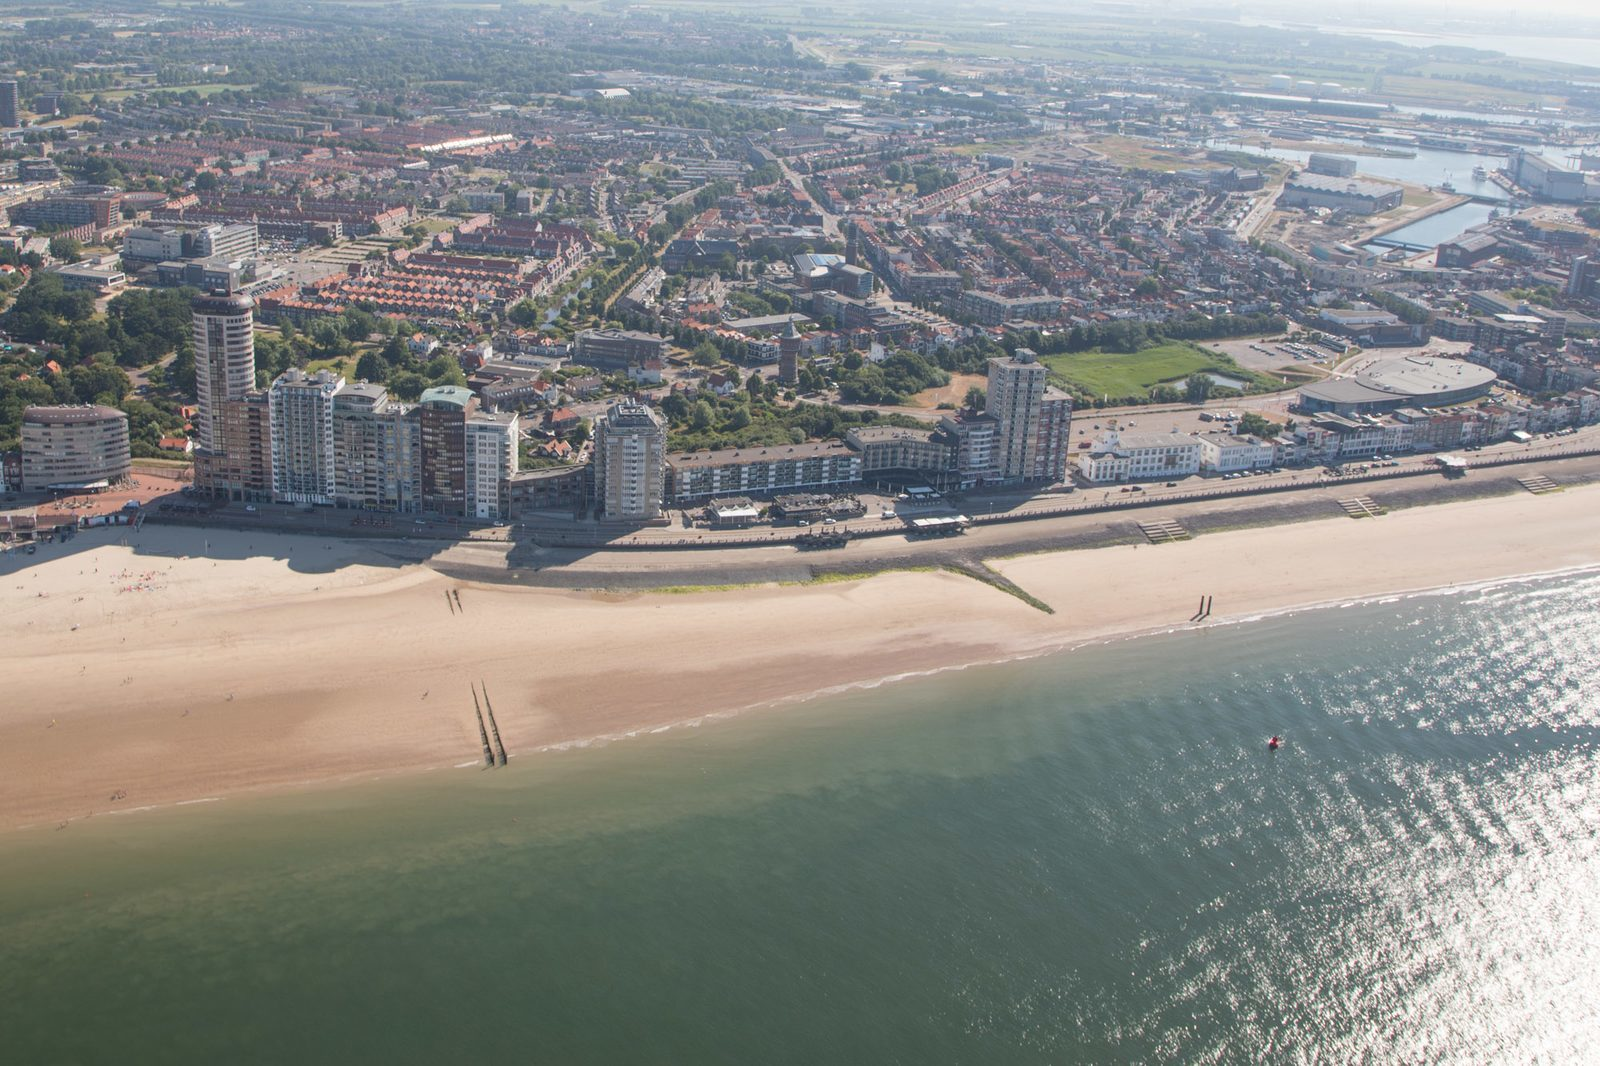 Strandapartments De Gulden Stroom, Vlissingen